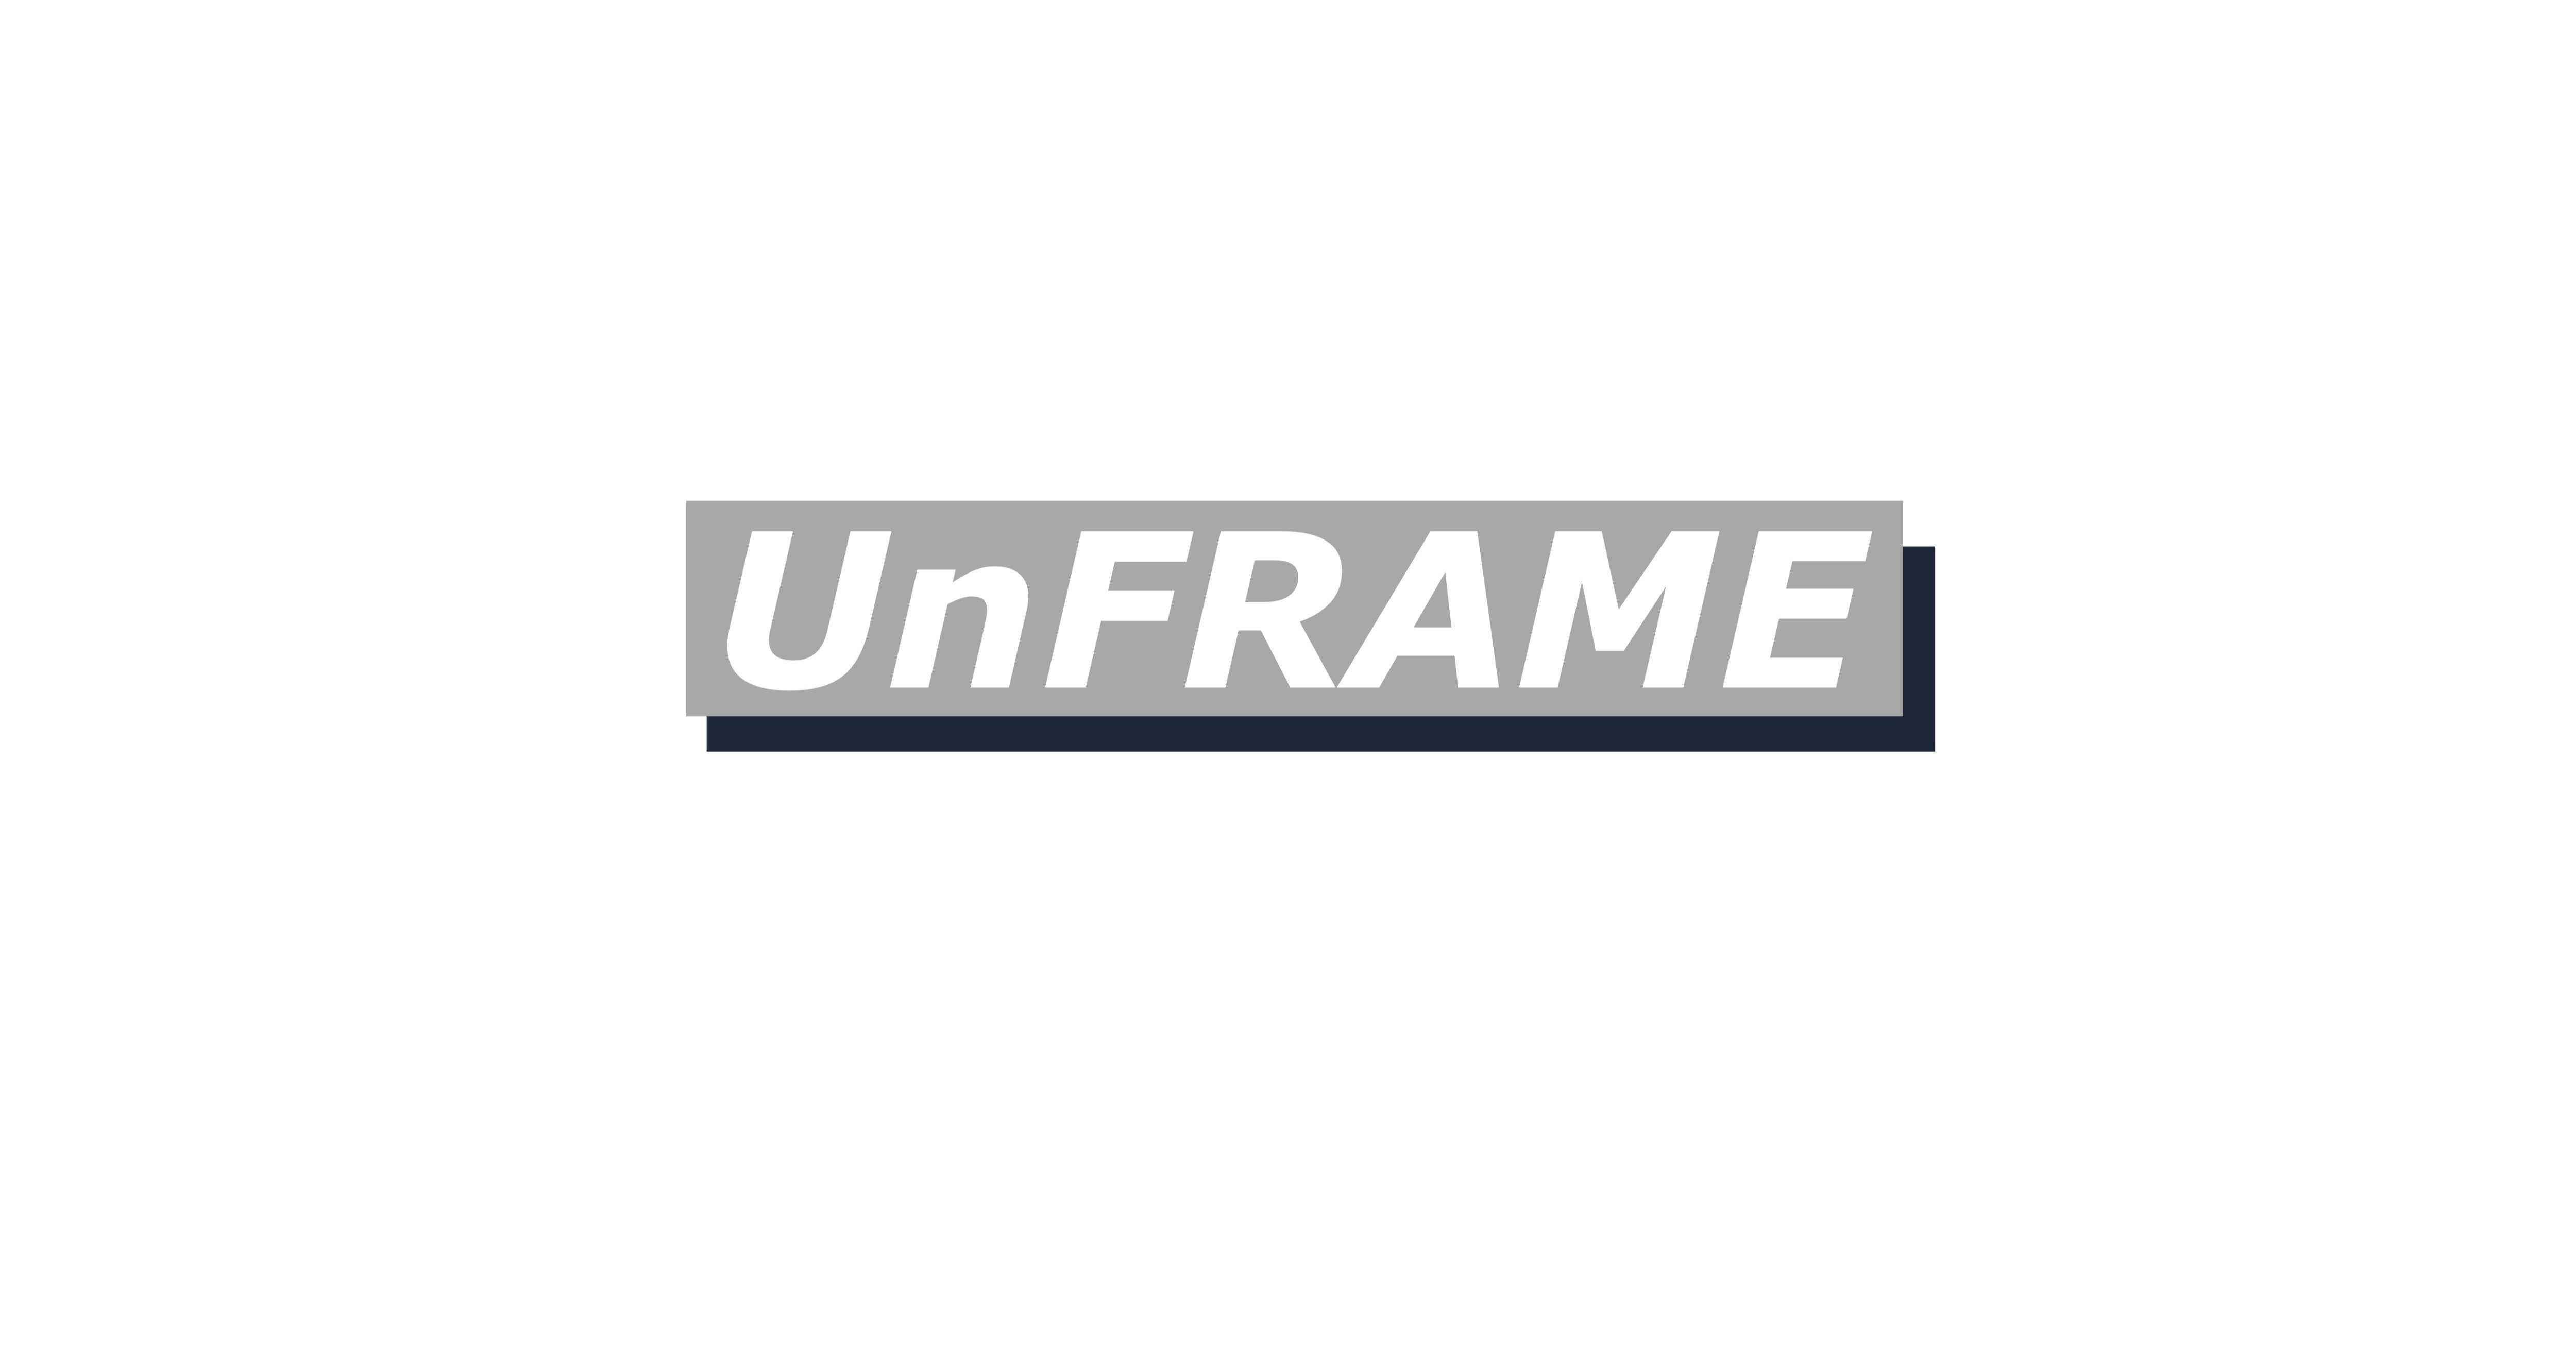 ABOUT UnFRAME 2020